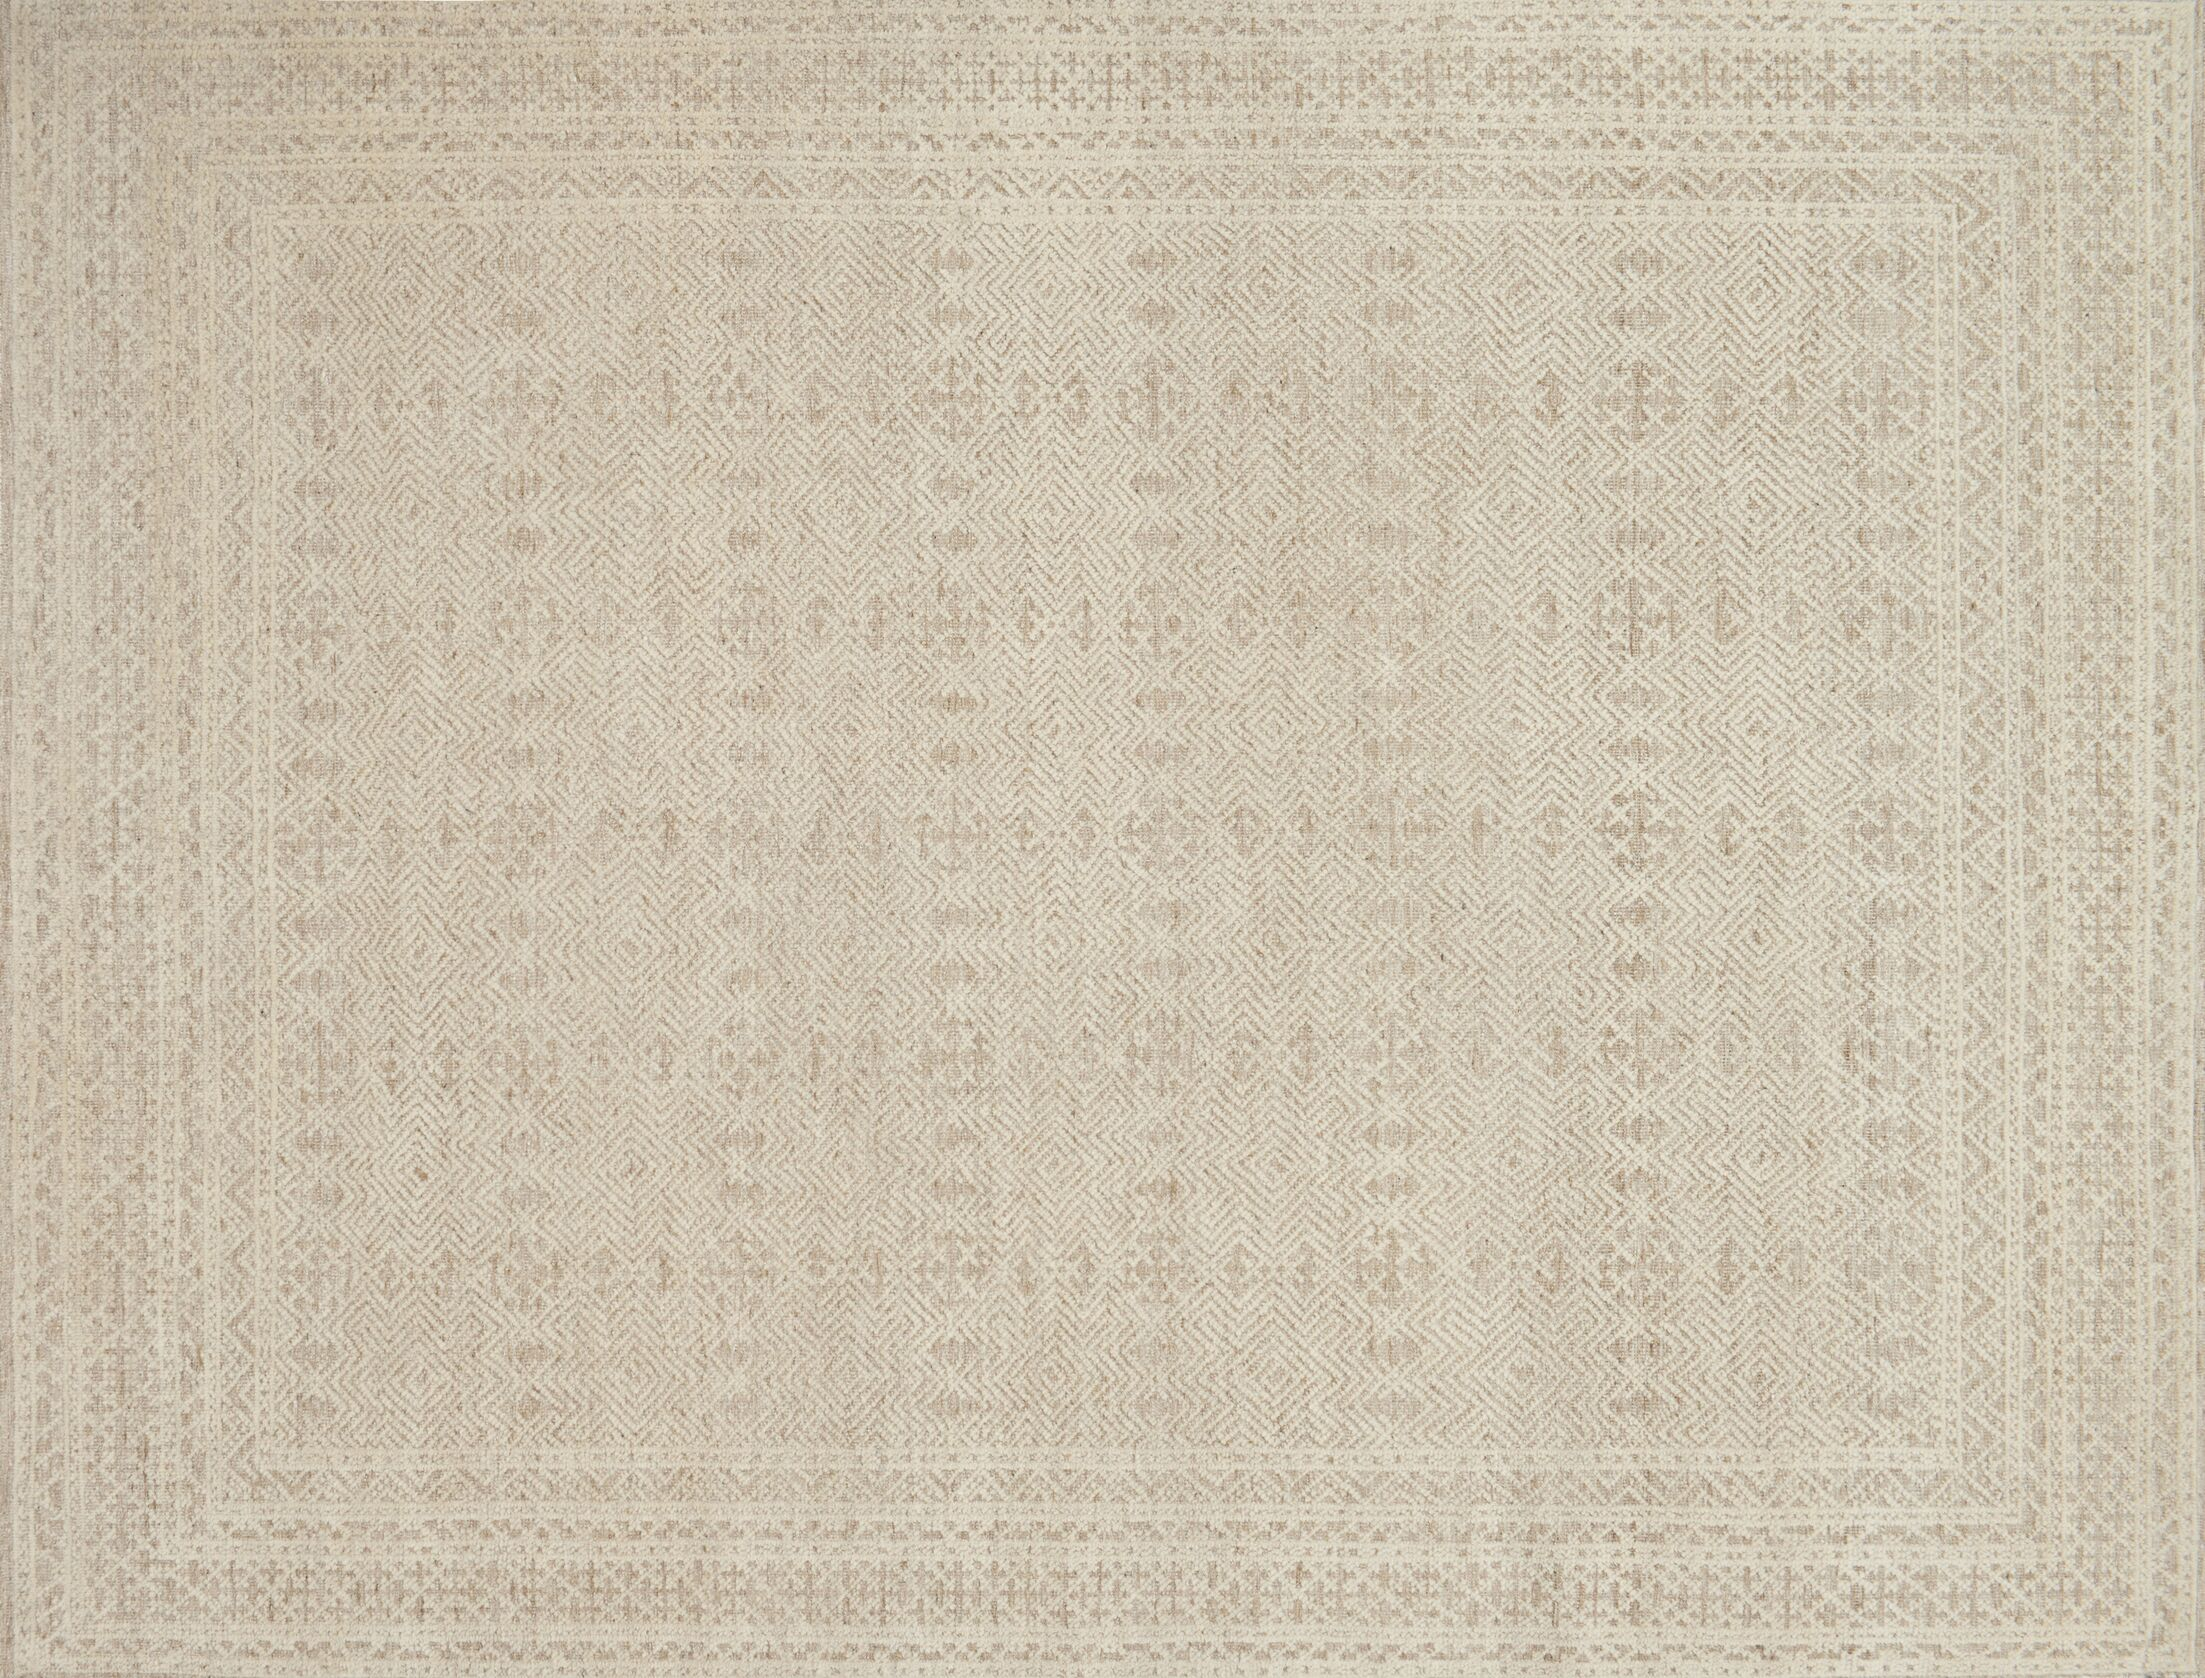 Parkerson Hand-Knotted Gray/Ivory Area Rug Rug Size: Rectangle 9' x 12'